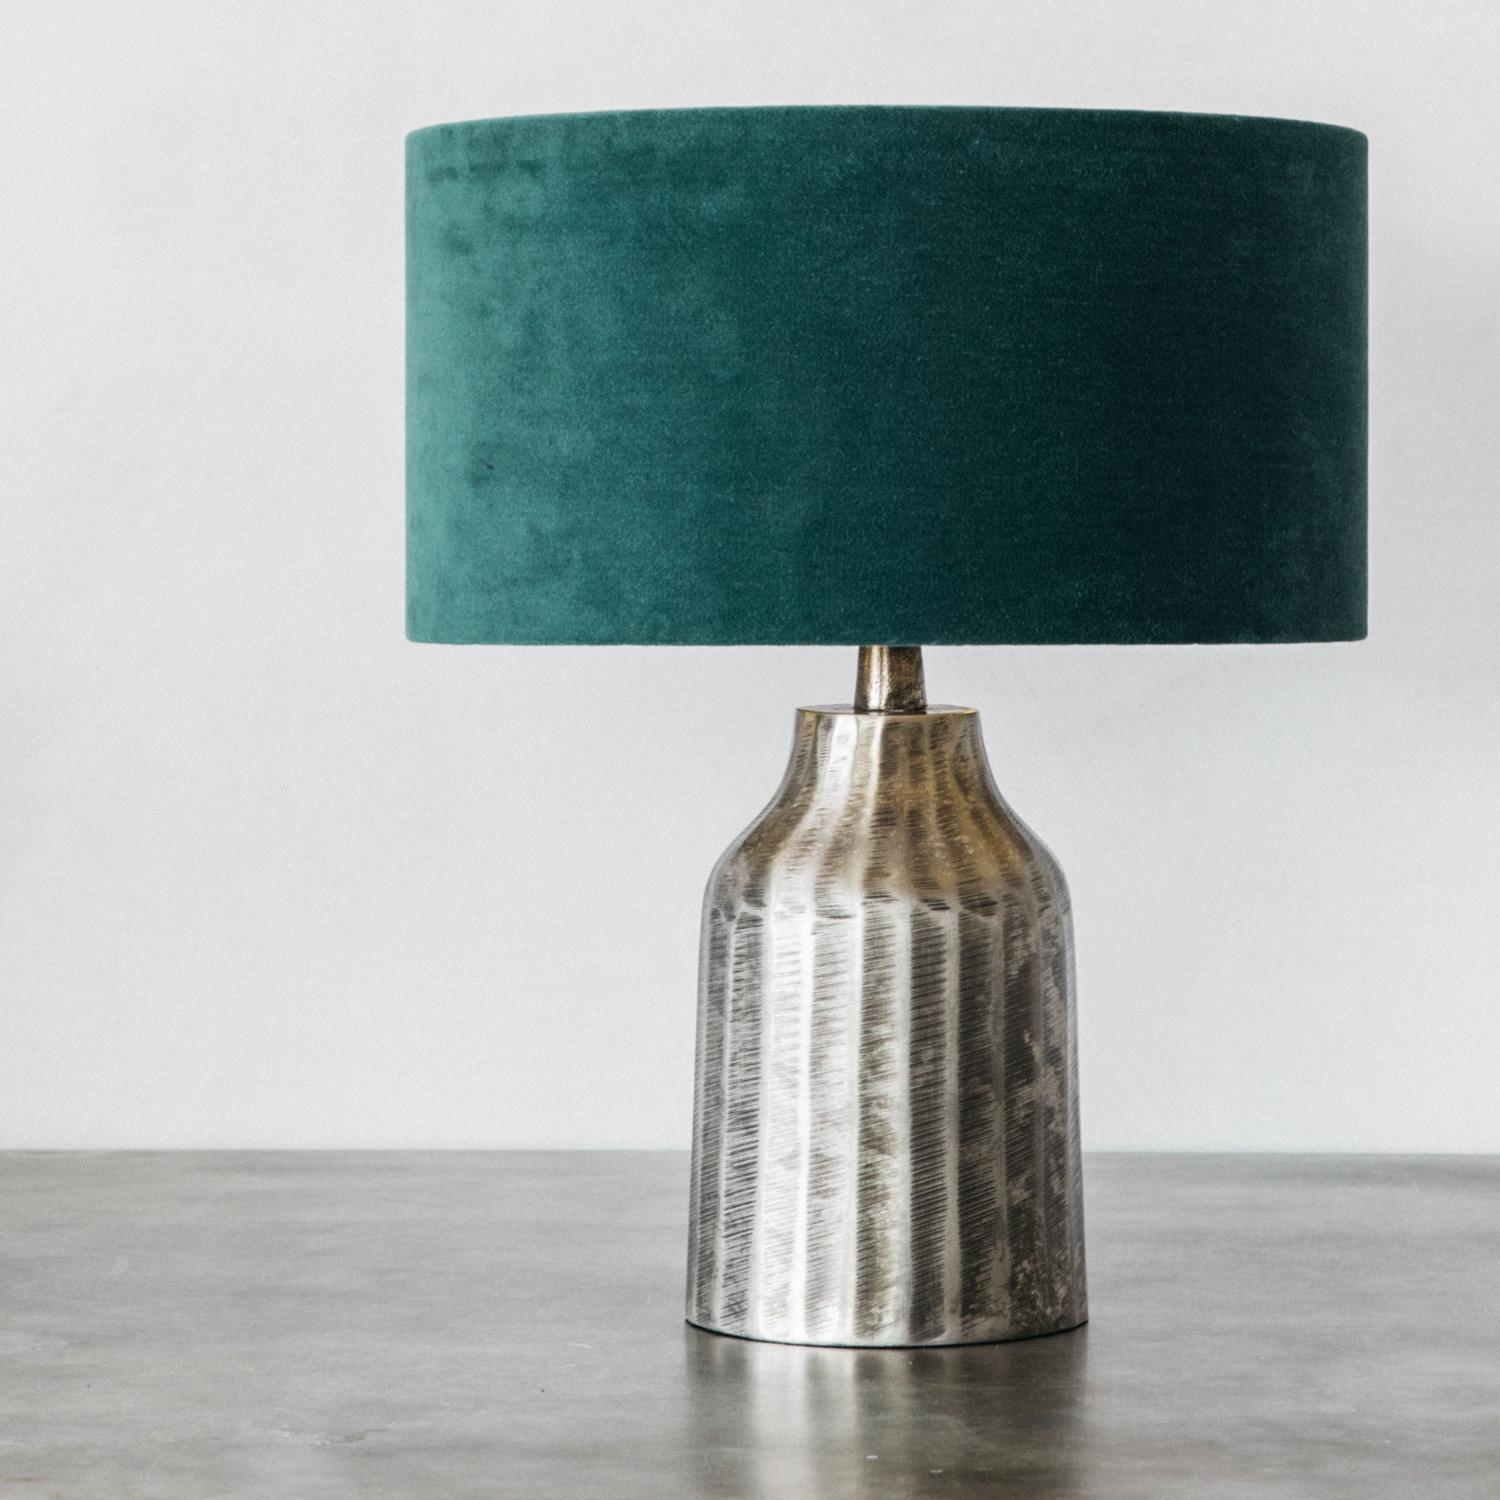 Embossed Ceramic Bedside Lamp with Shade Lamp, Black